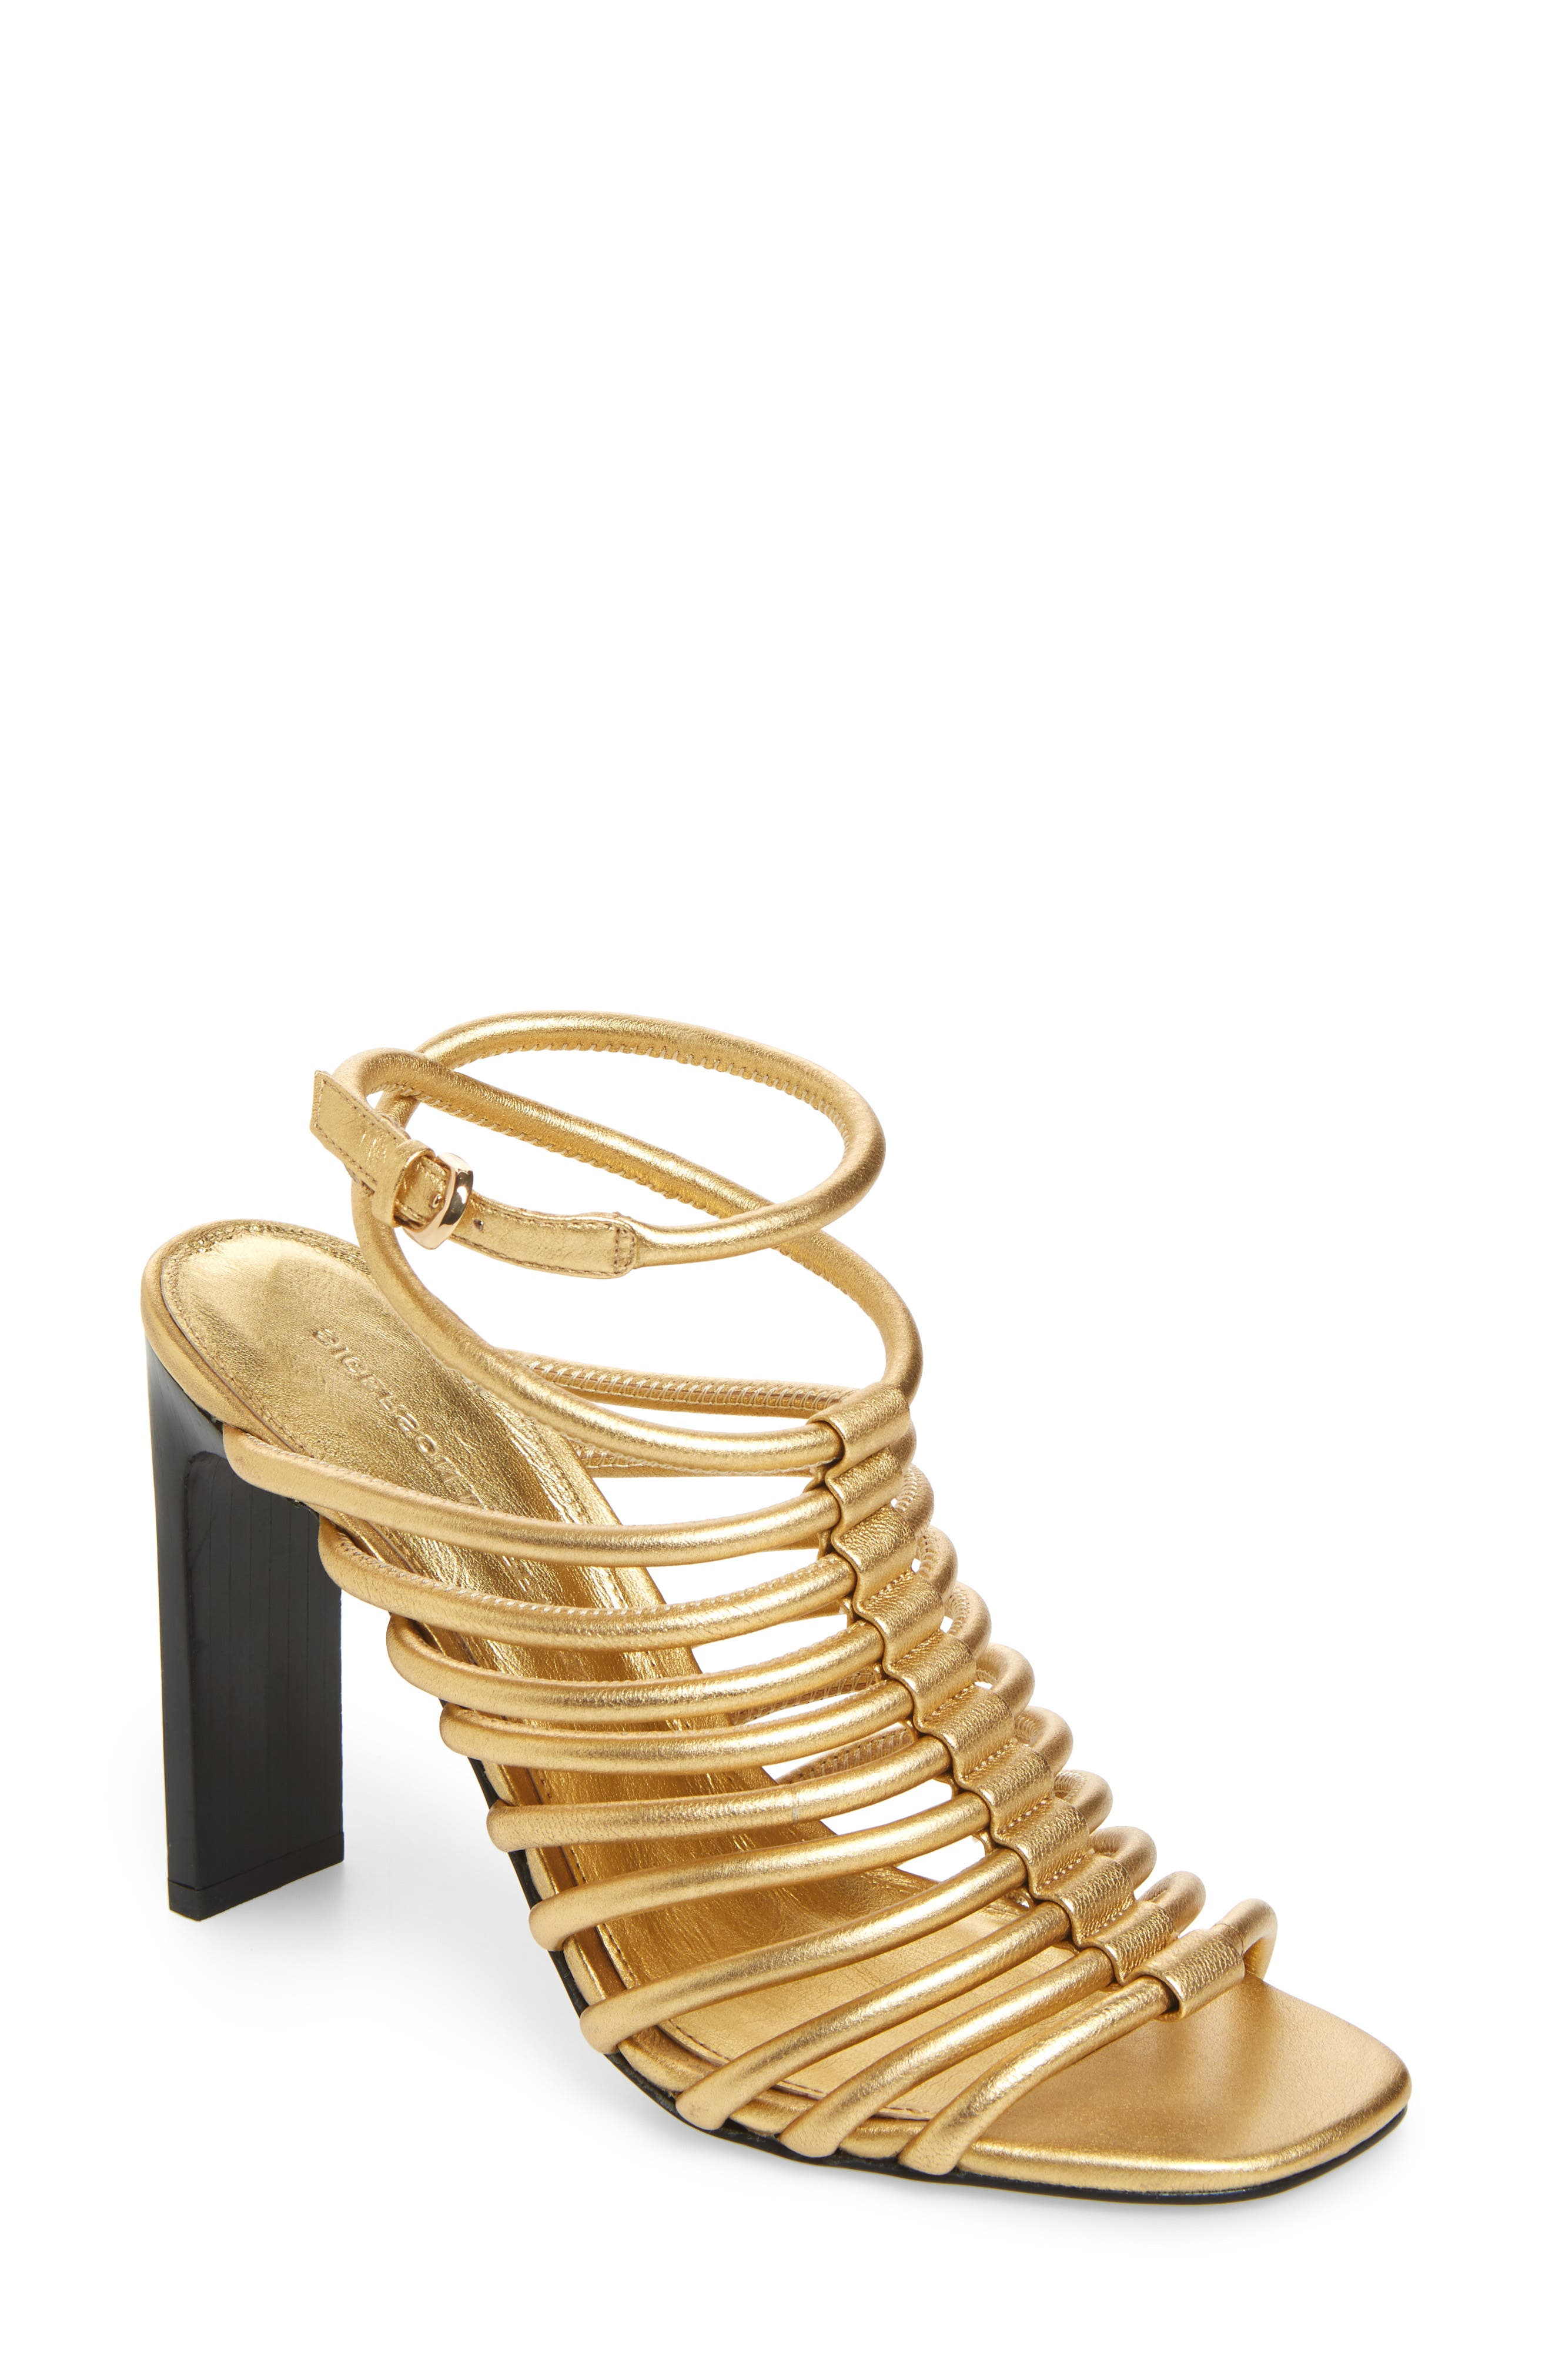 HH Caged Ankle Strap Sandal,                         Main,                         color, Gold